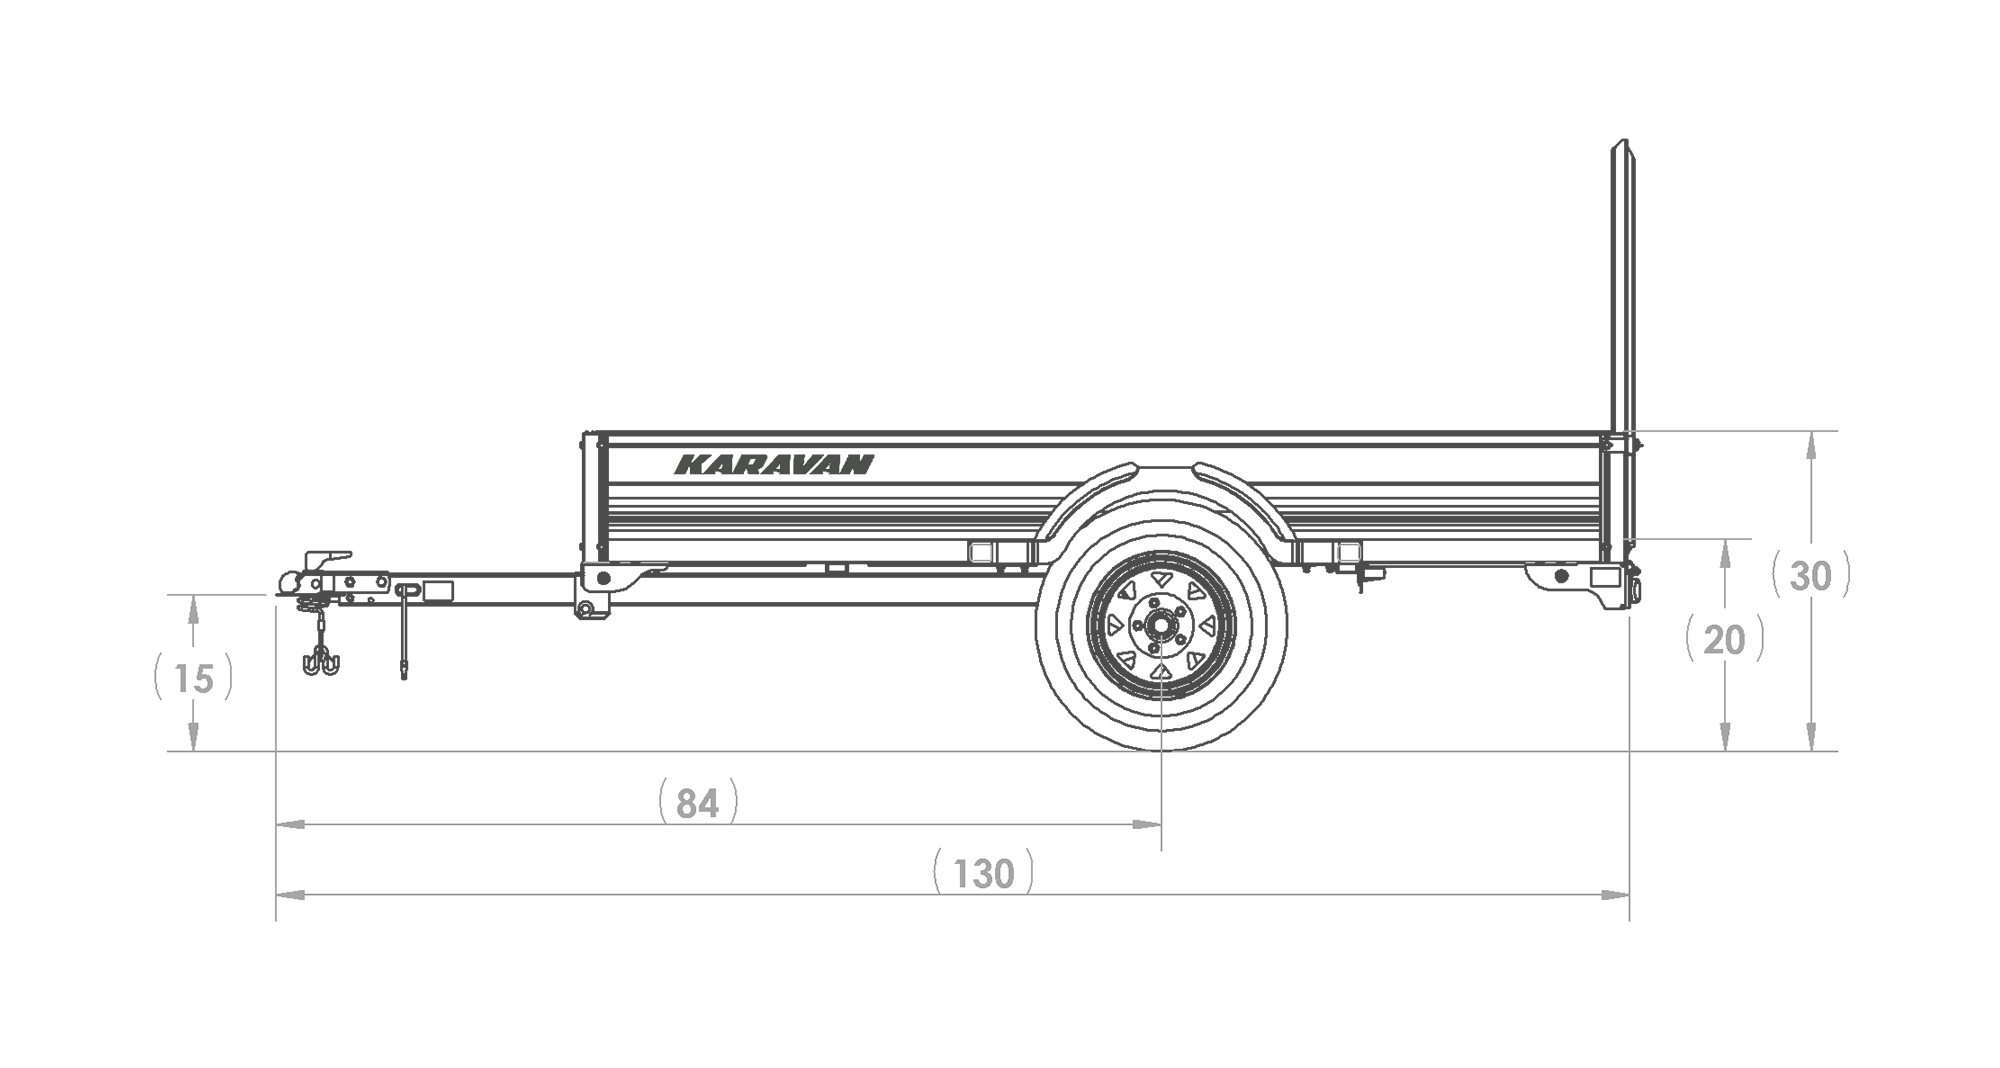 Karavan Trailer's 4.5 x 8 Ft. Aluminum Utility Trailer, model number SCU-2200-T-56, Side View Measurements